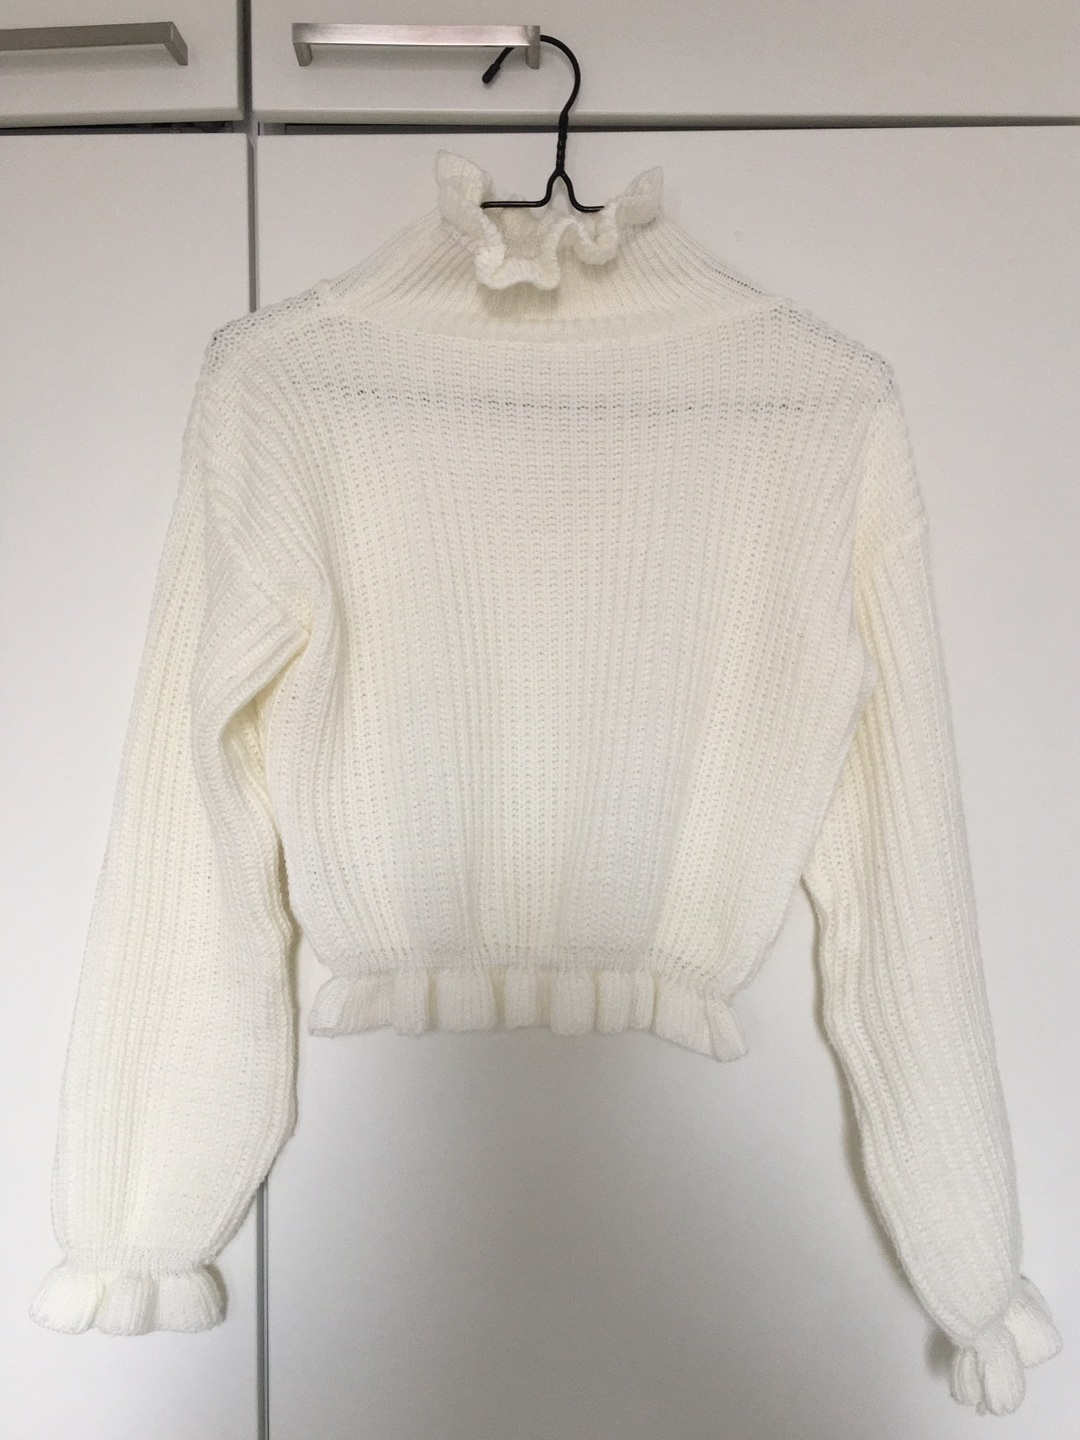 Women's jumpers & cardigans - MISSY EMPIRE photo 2